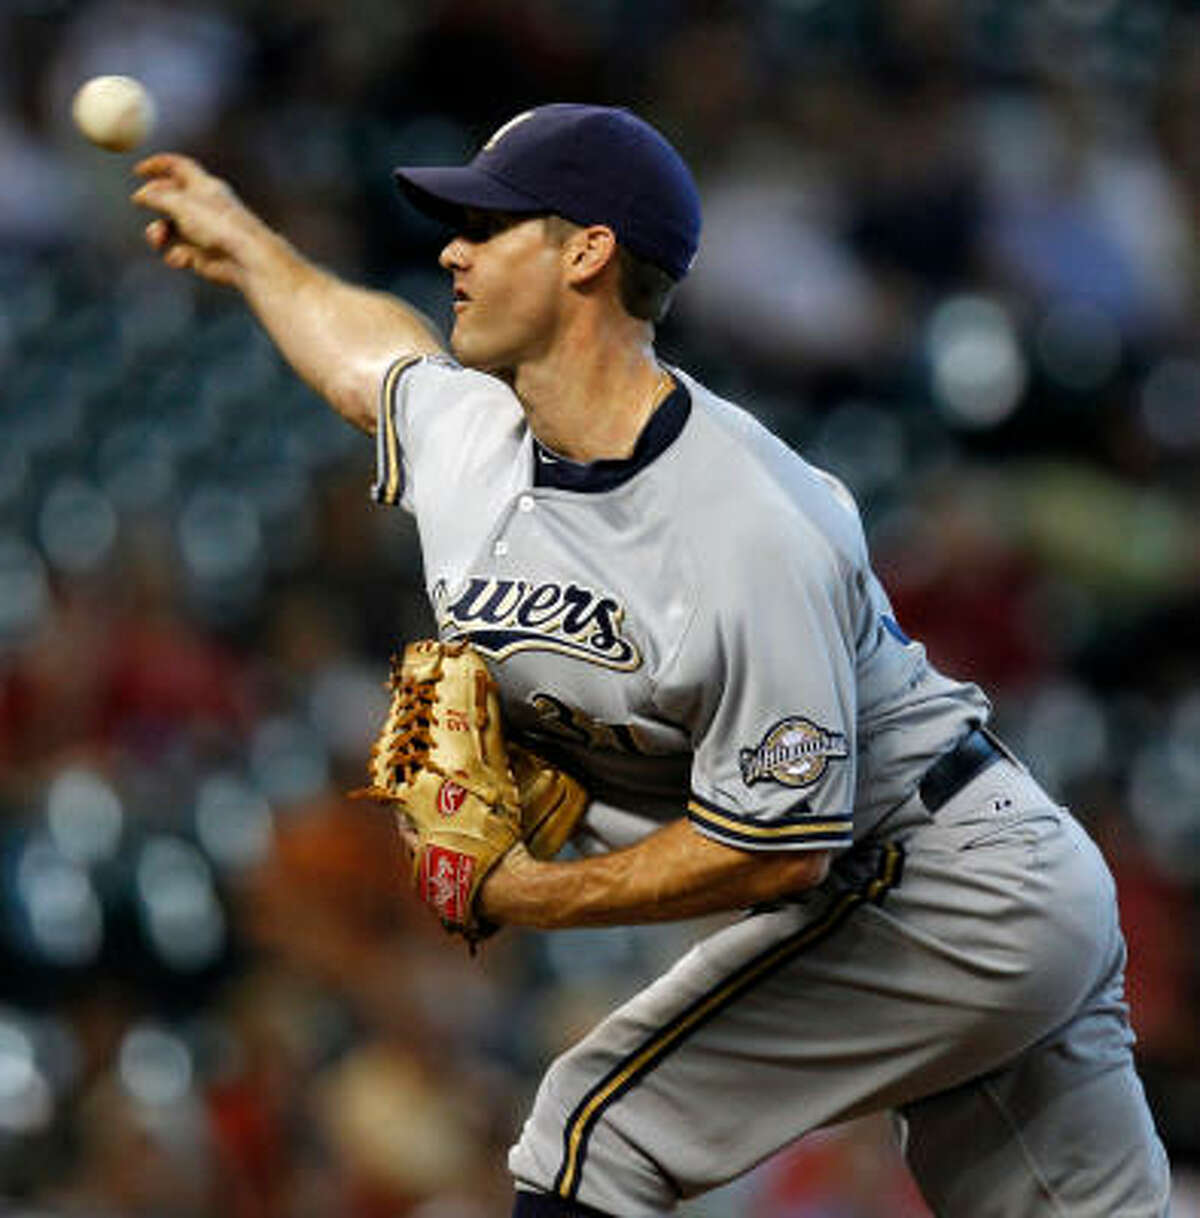 Brewers starter Dave Bush gave up six runs (five earned) in 4 1/3 innings.